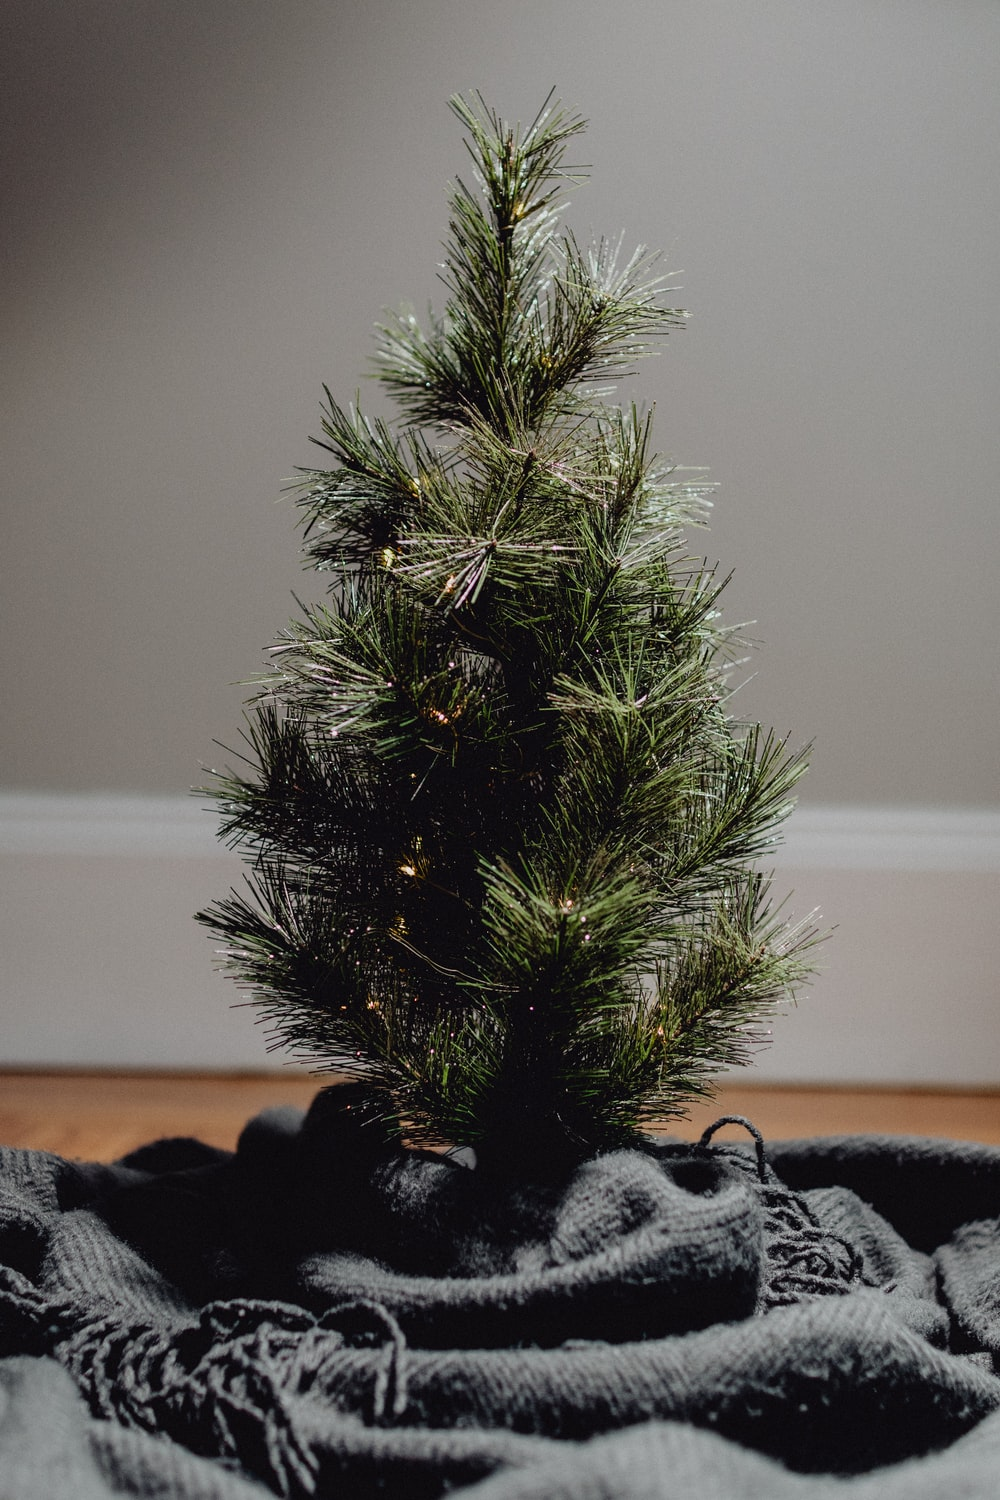 green pine tree on black and white textile